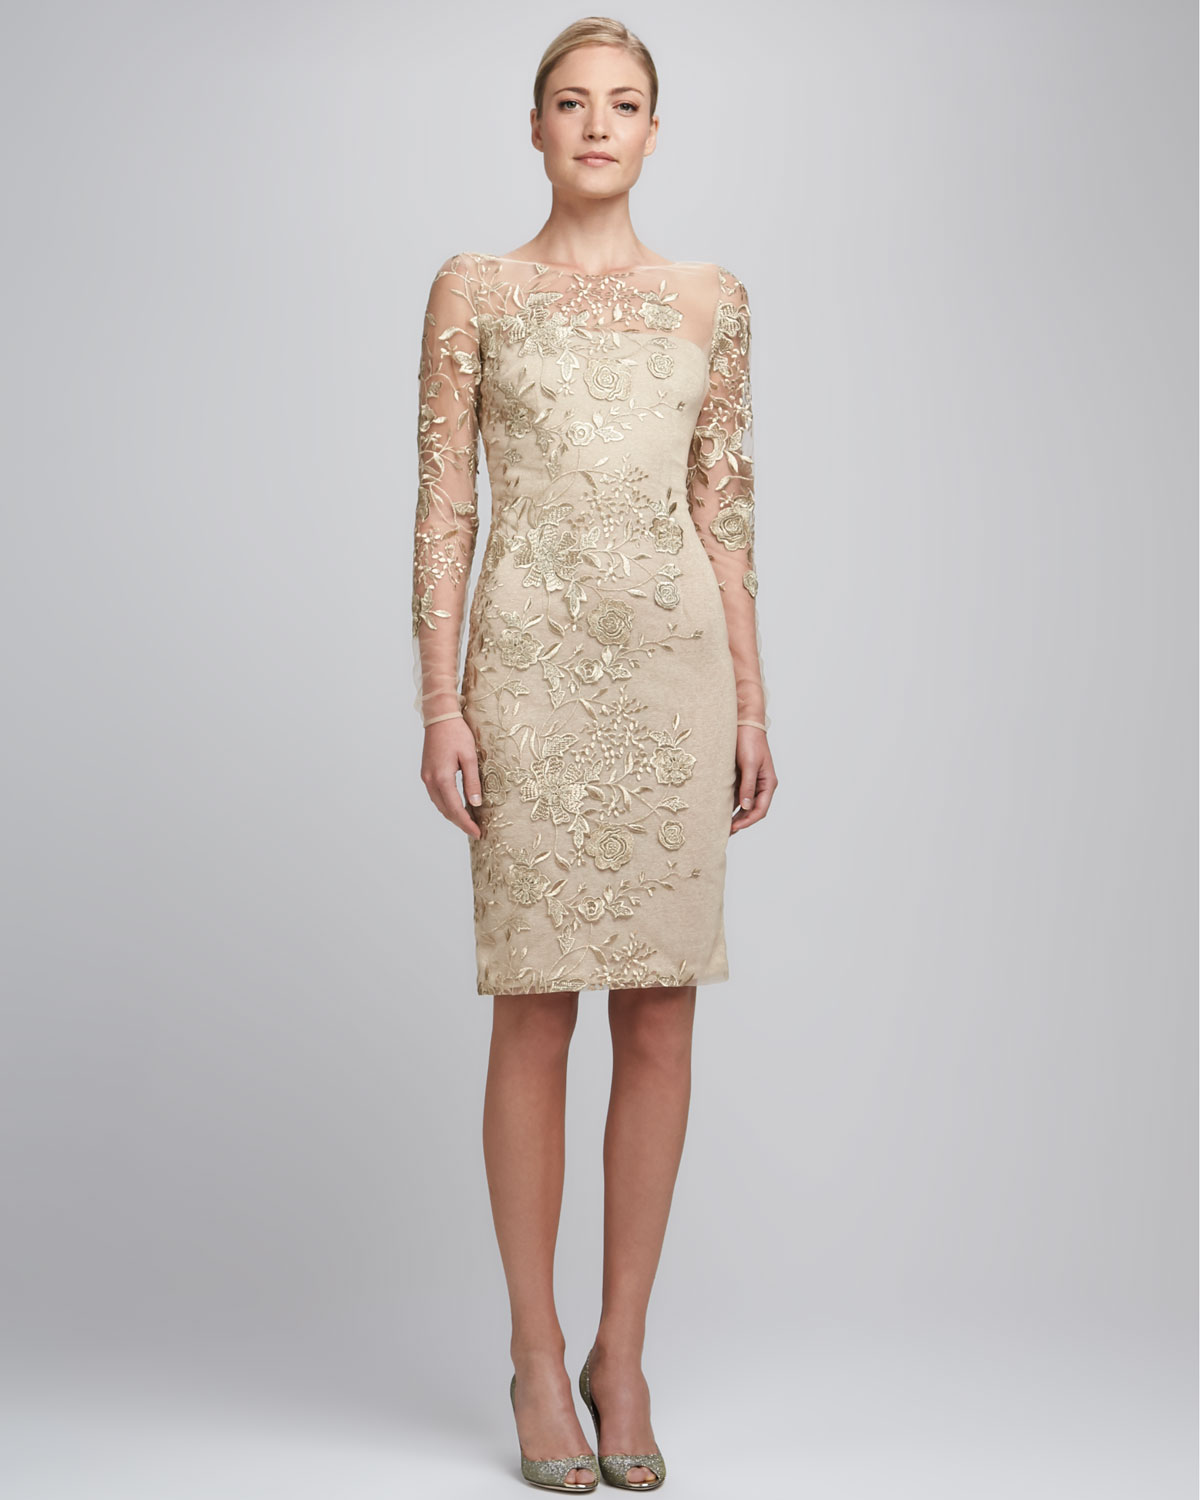 David Meister Embroidered Lace Cocktail Dress In Beige